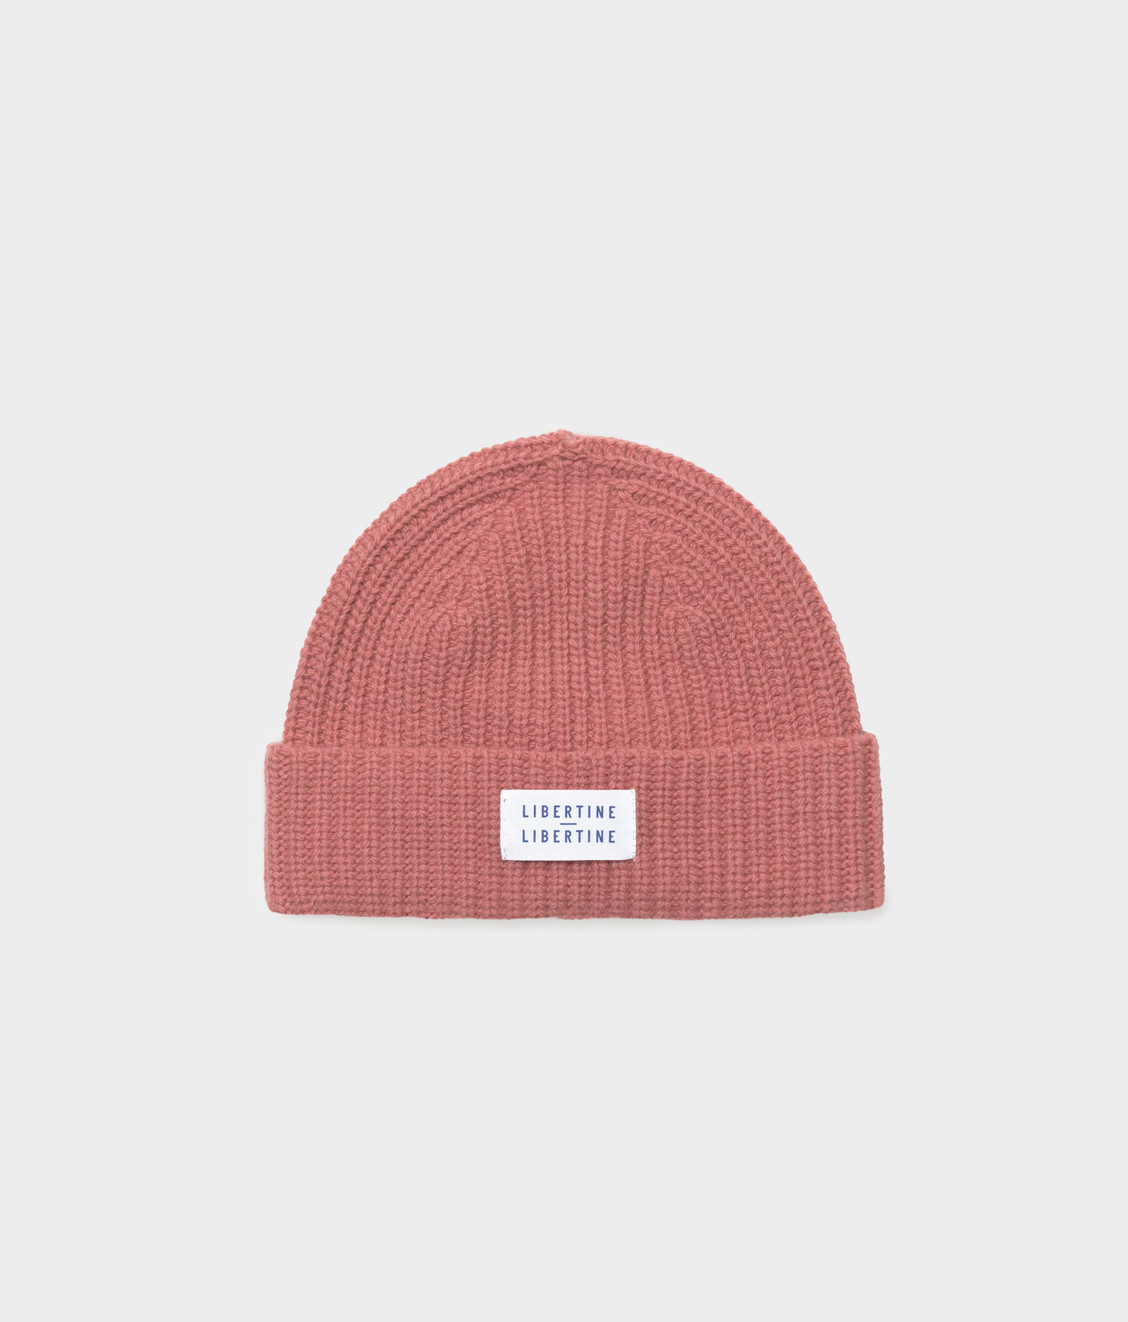 Libertine Libertine Libertine Libertine Beanie Smoked Orchid OS